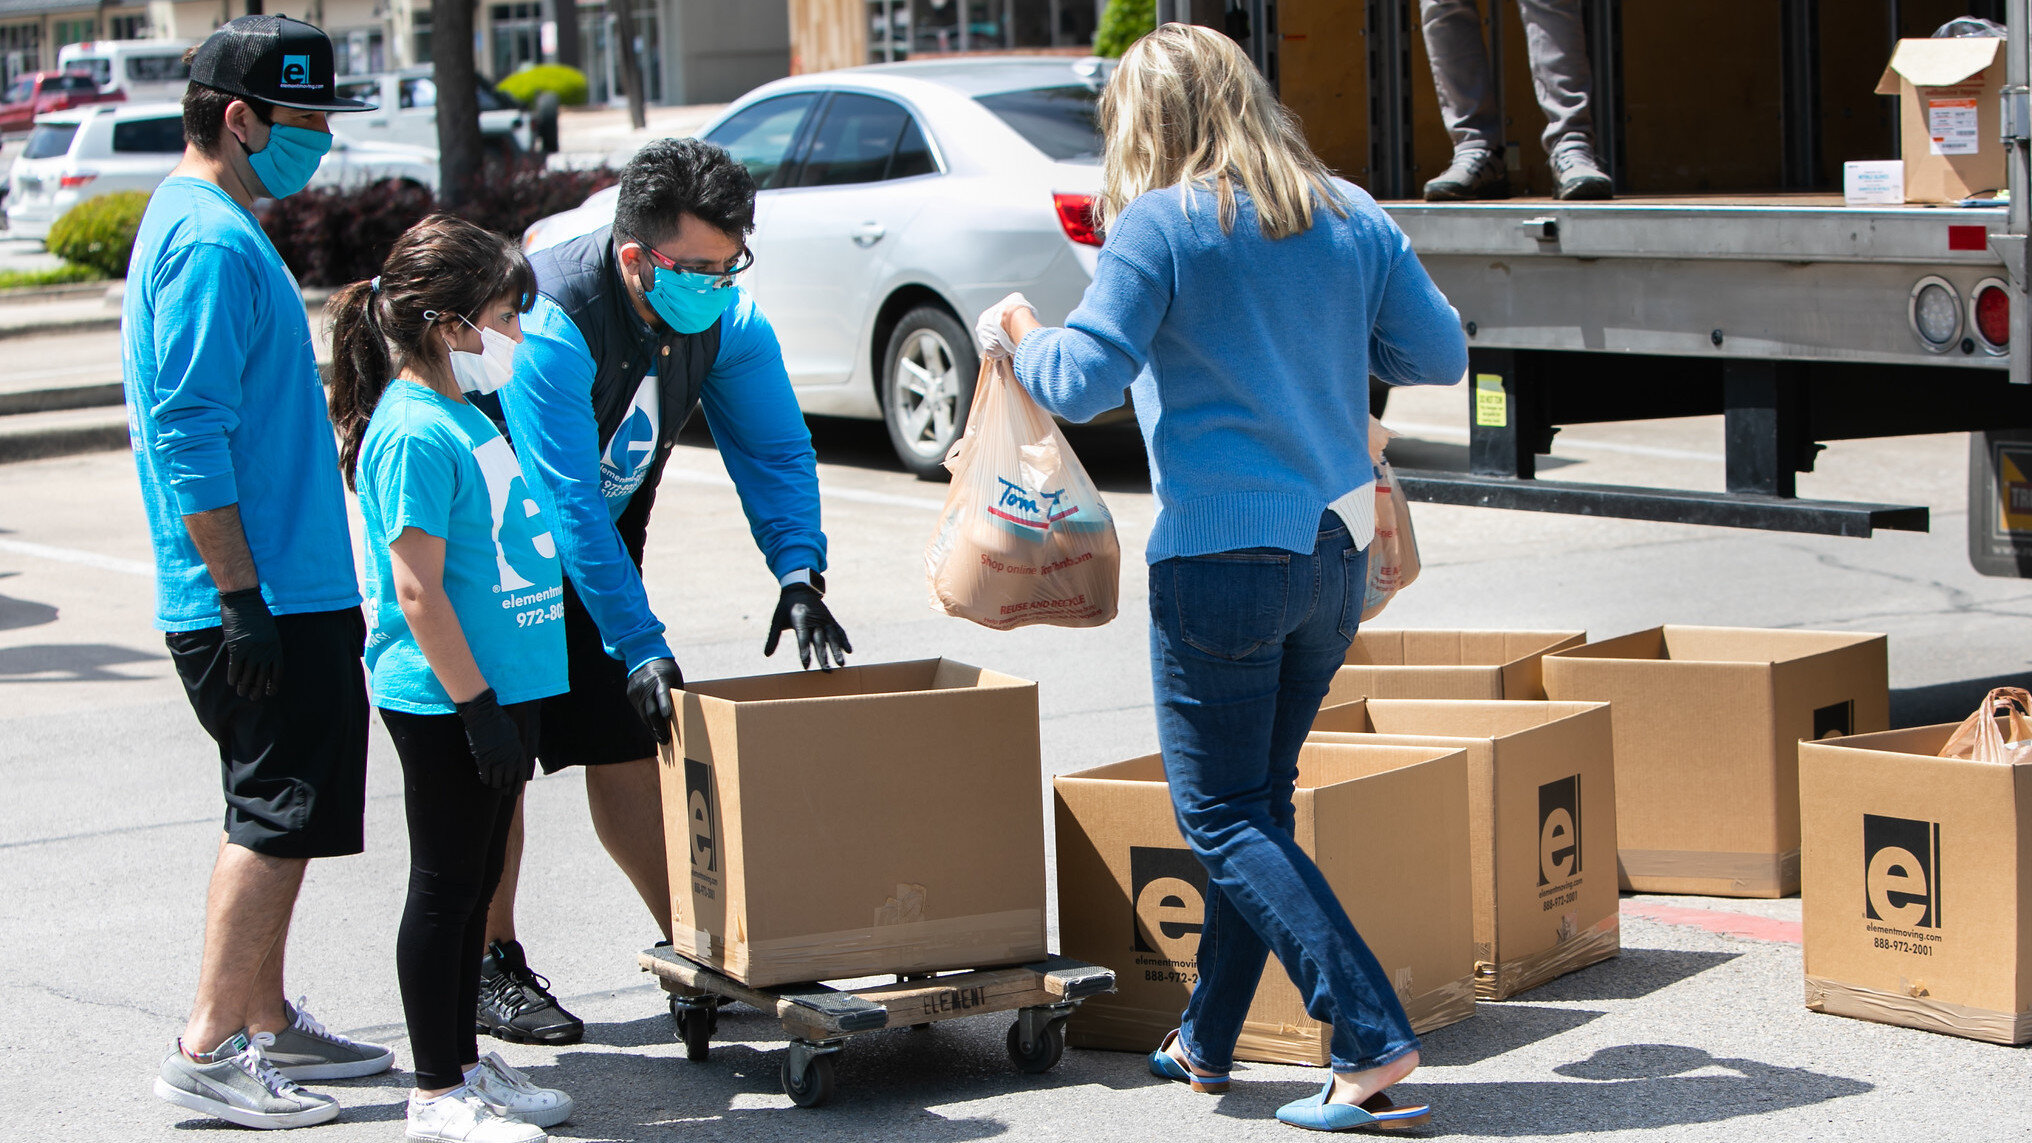 Element Moving and Chefs for Farmers partnered to load a moving van with needed food supplies for area food banks. (Photo: Move For Hunger)